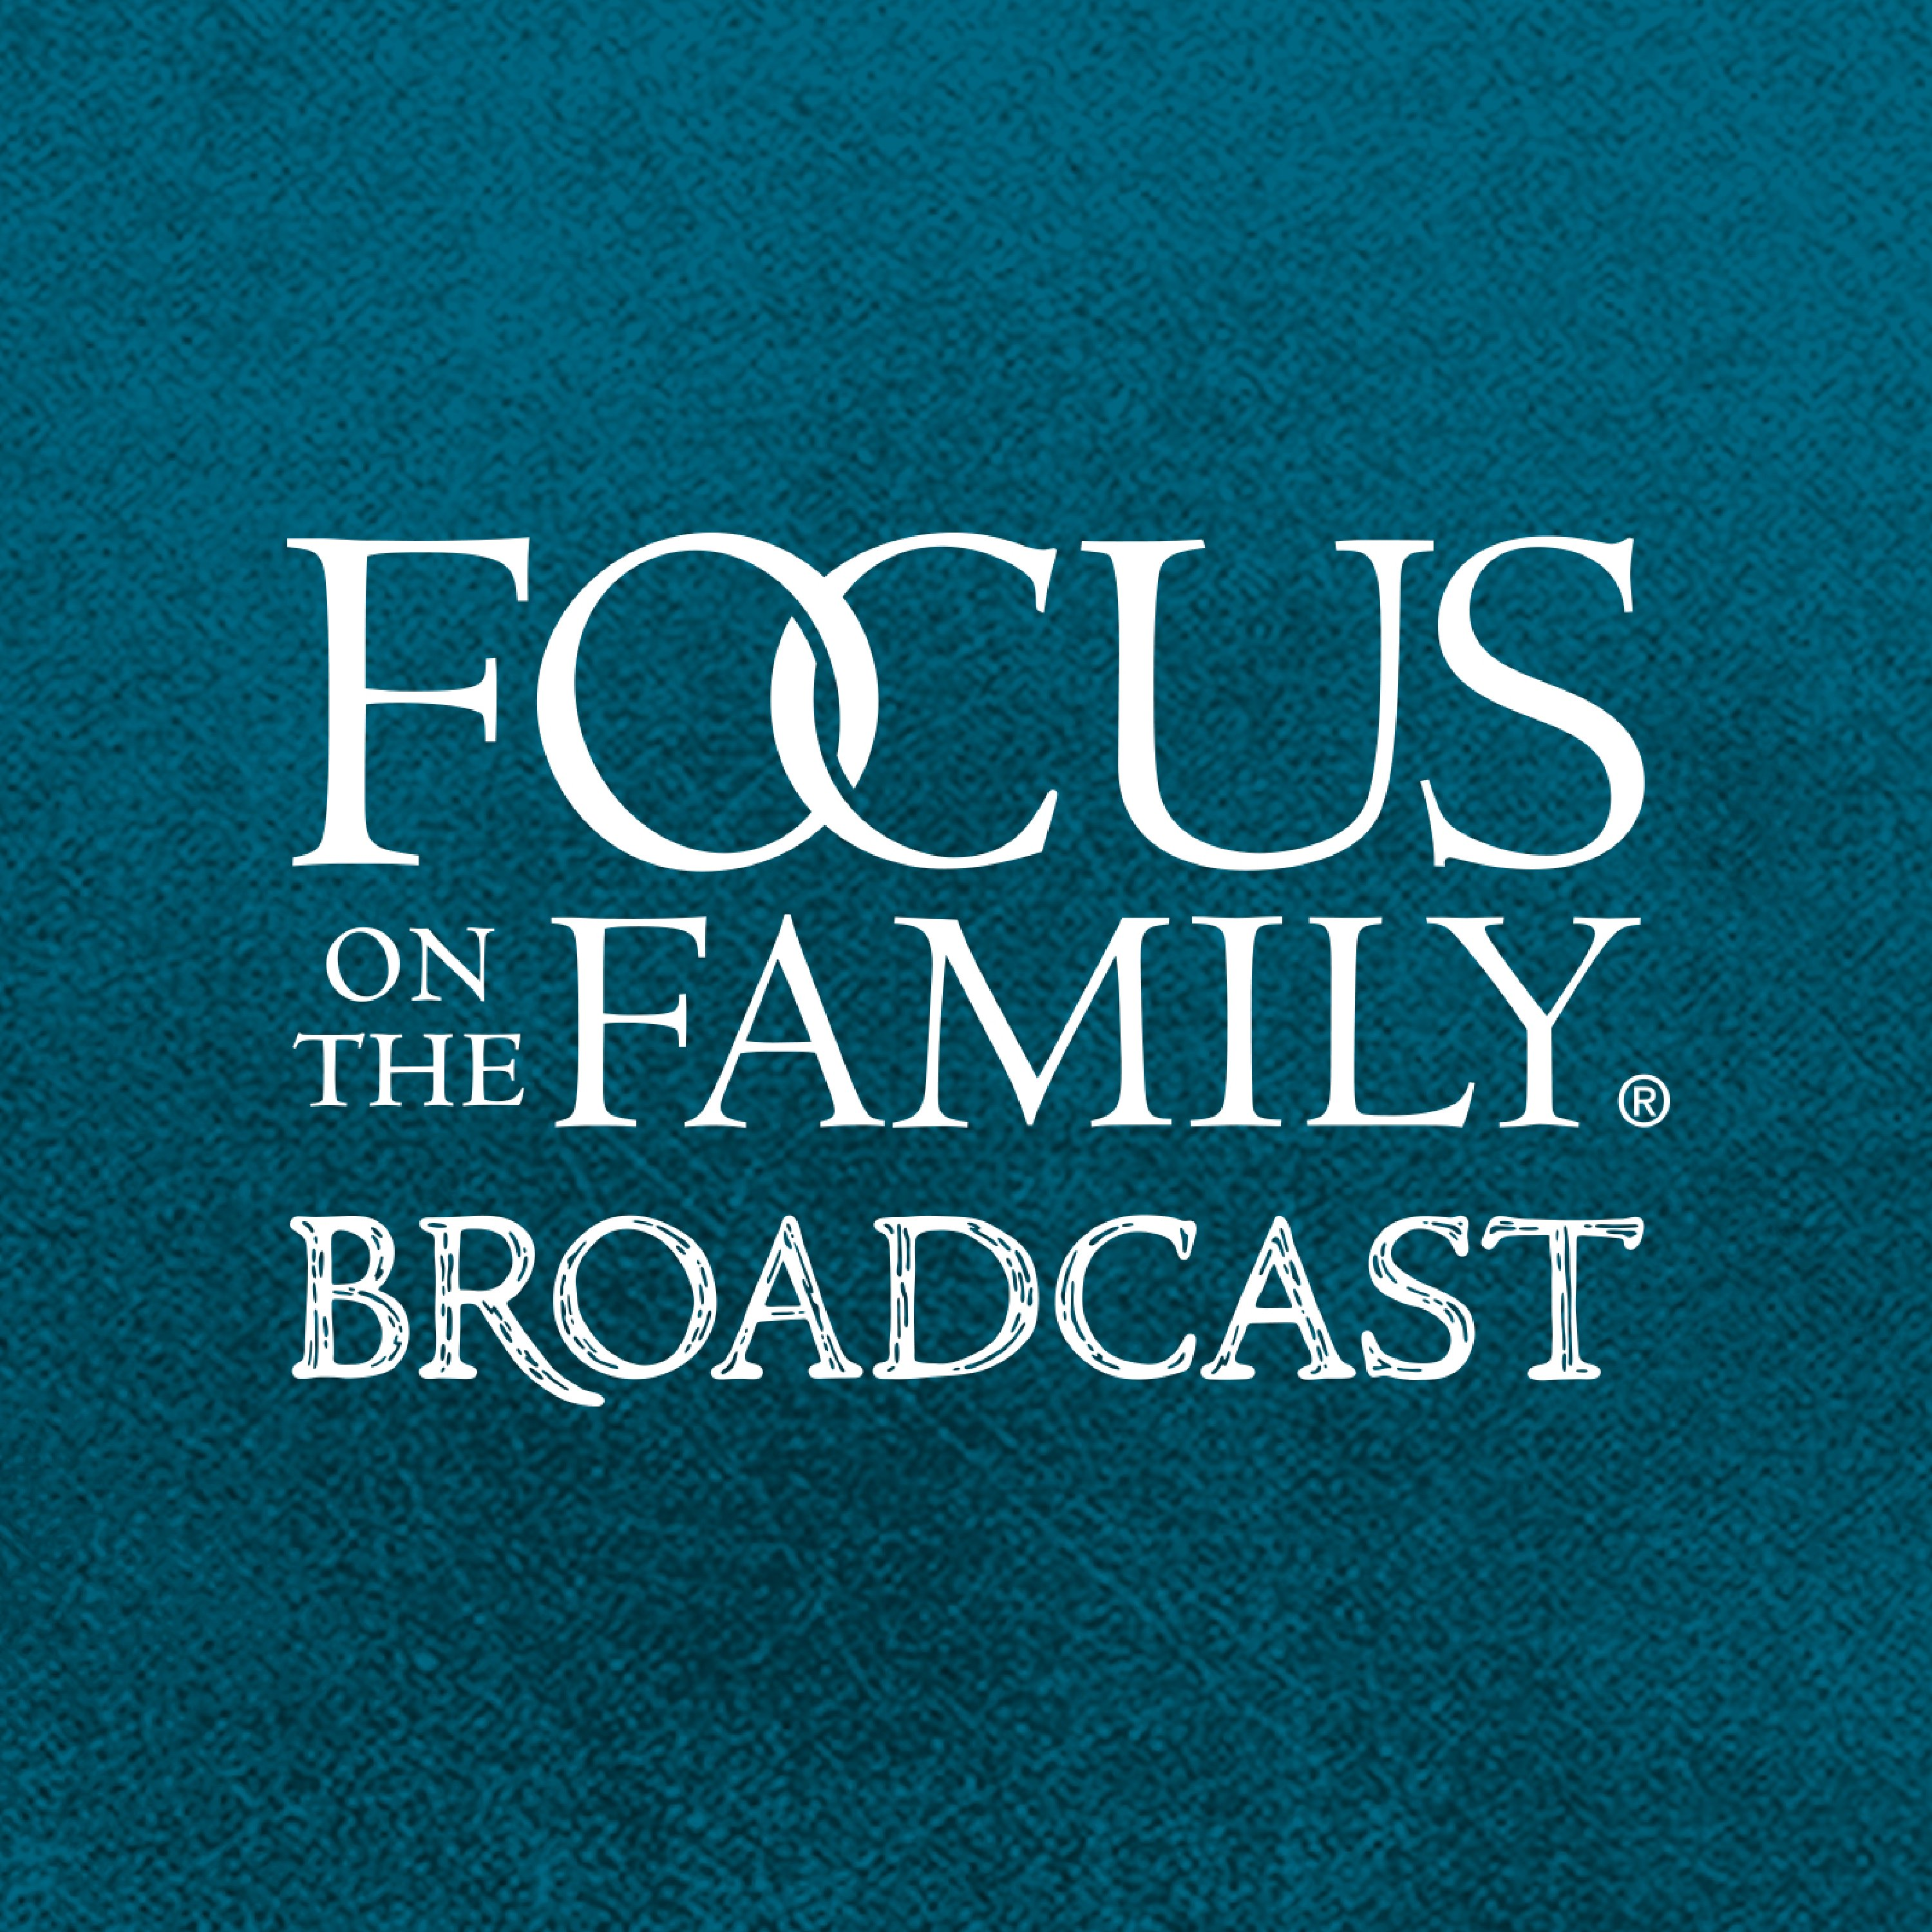 Focus on the Family Broadcast podcast